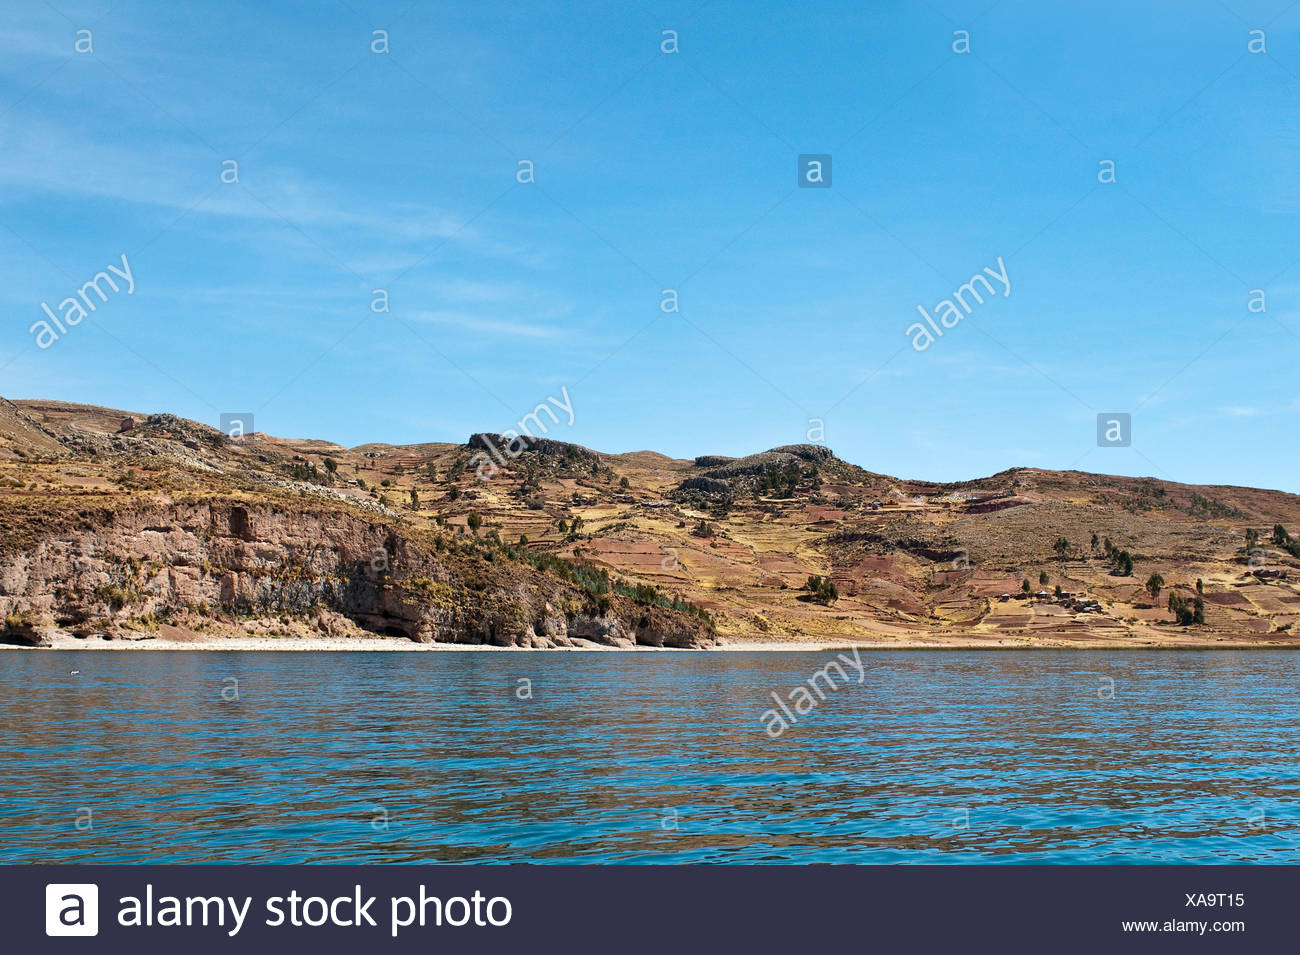 view from the water at the shore of Lake Titicaca, Peru, Taquile Island, Lake Titicaca - Stock Image